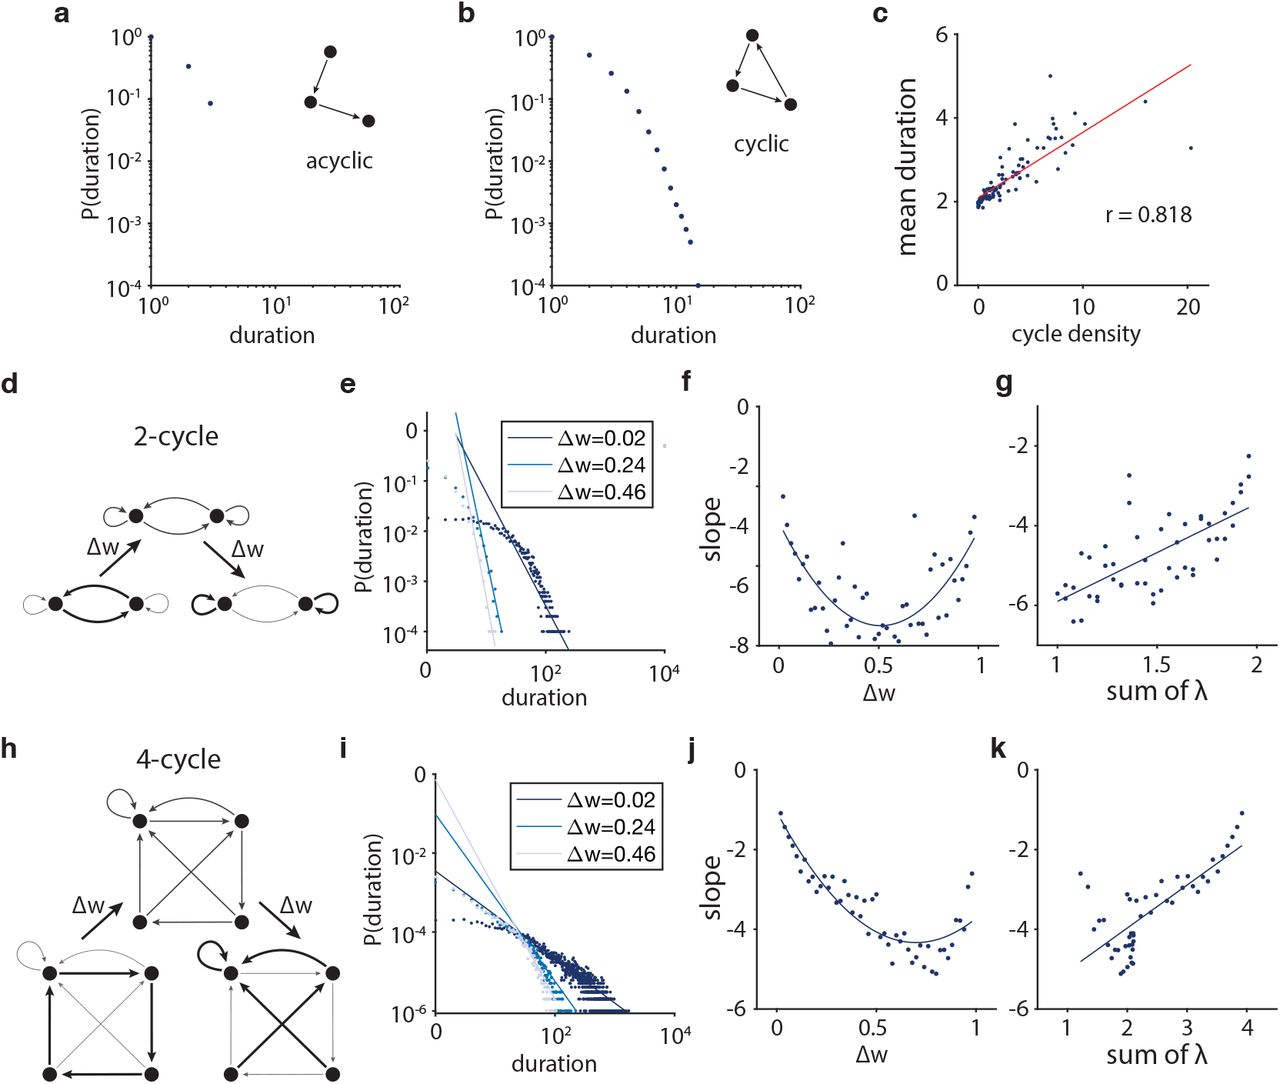 Network topology of neural systems supporting avalanche